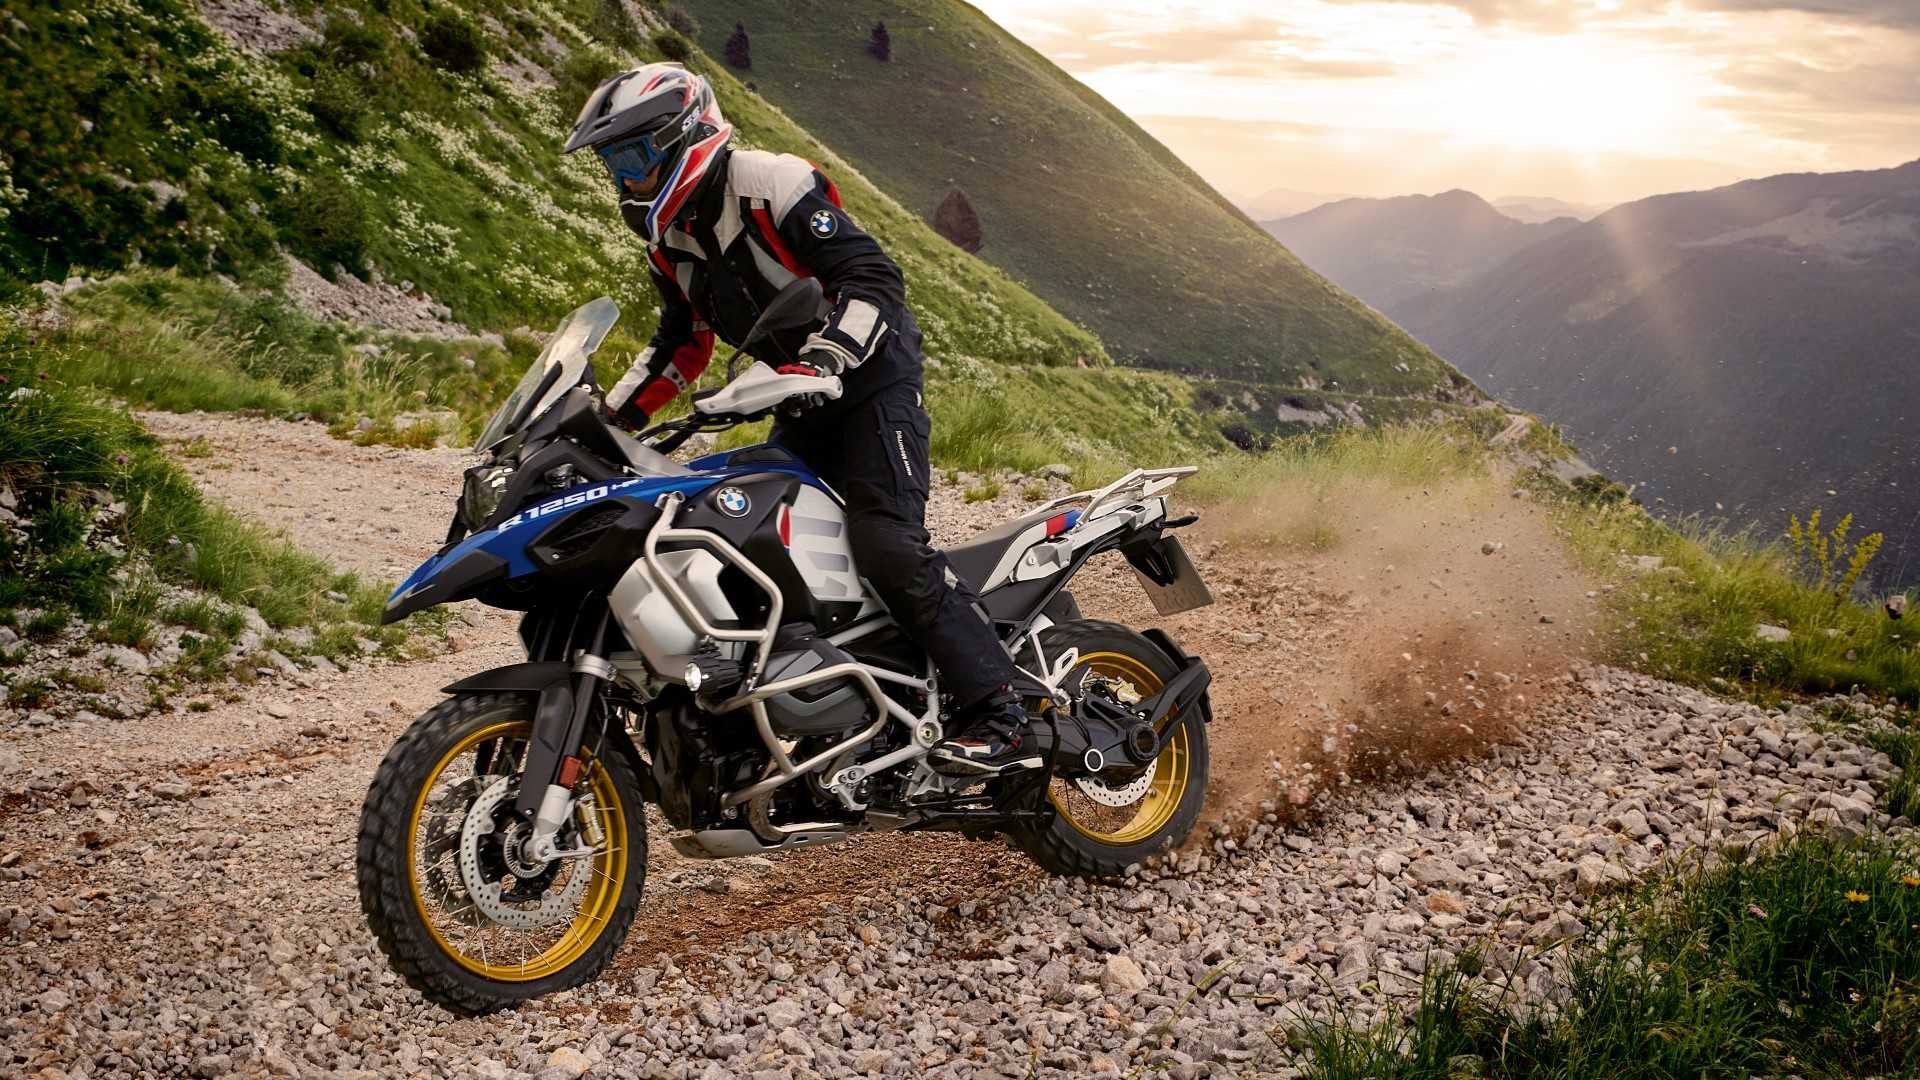 The Bmw R 1250 R Rs And Gs Adventure Offer Upsized Fun